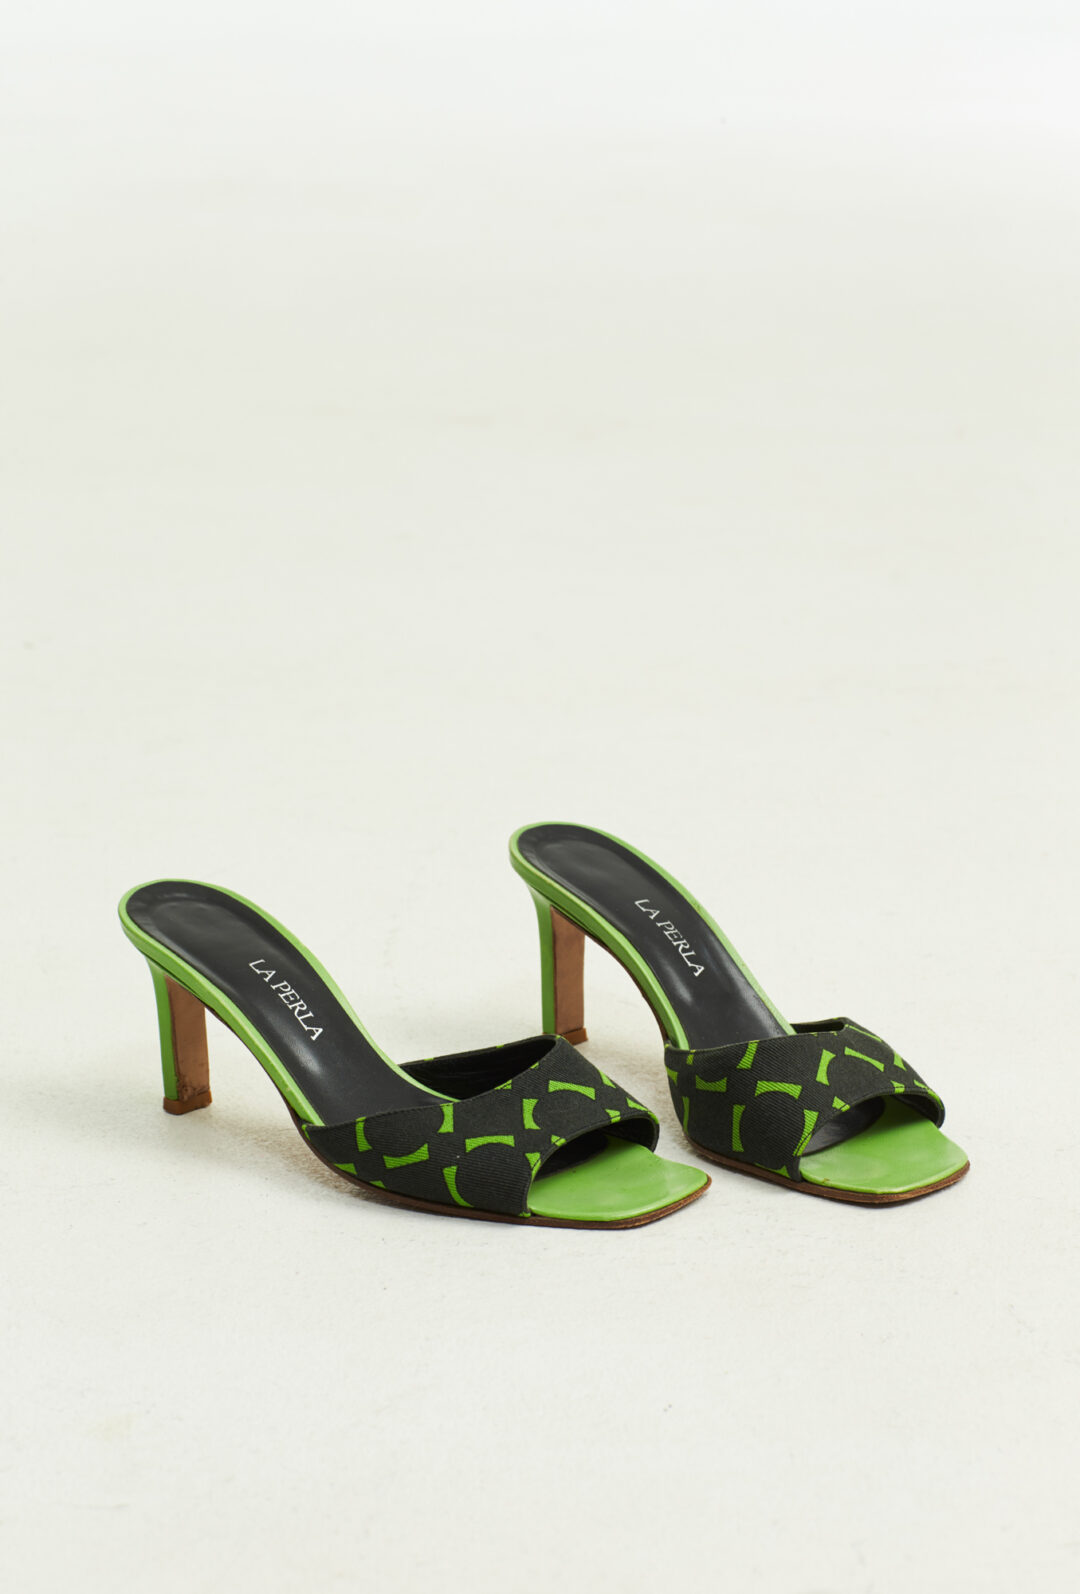 Collect23 La Perla sandals